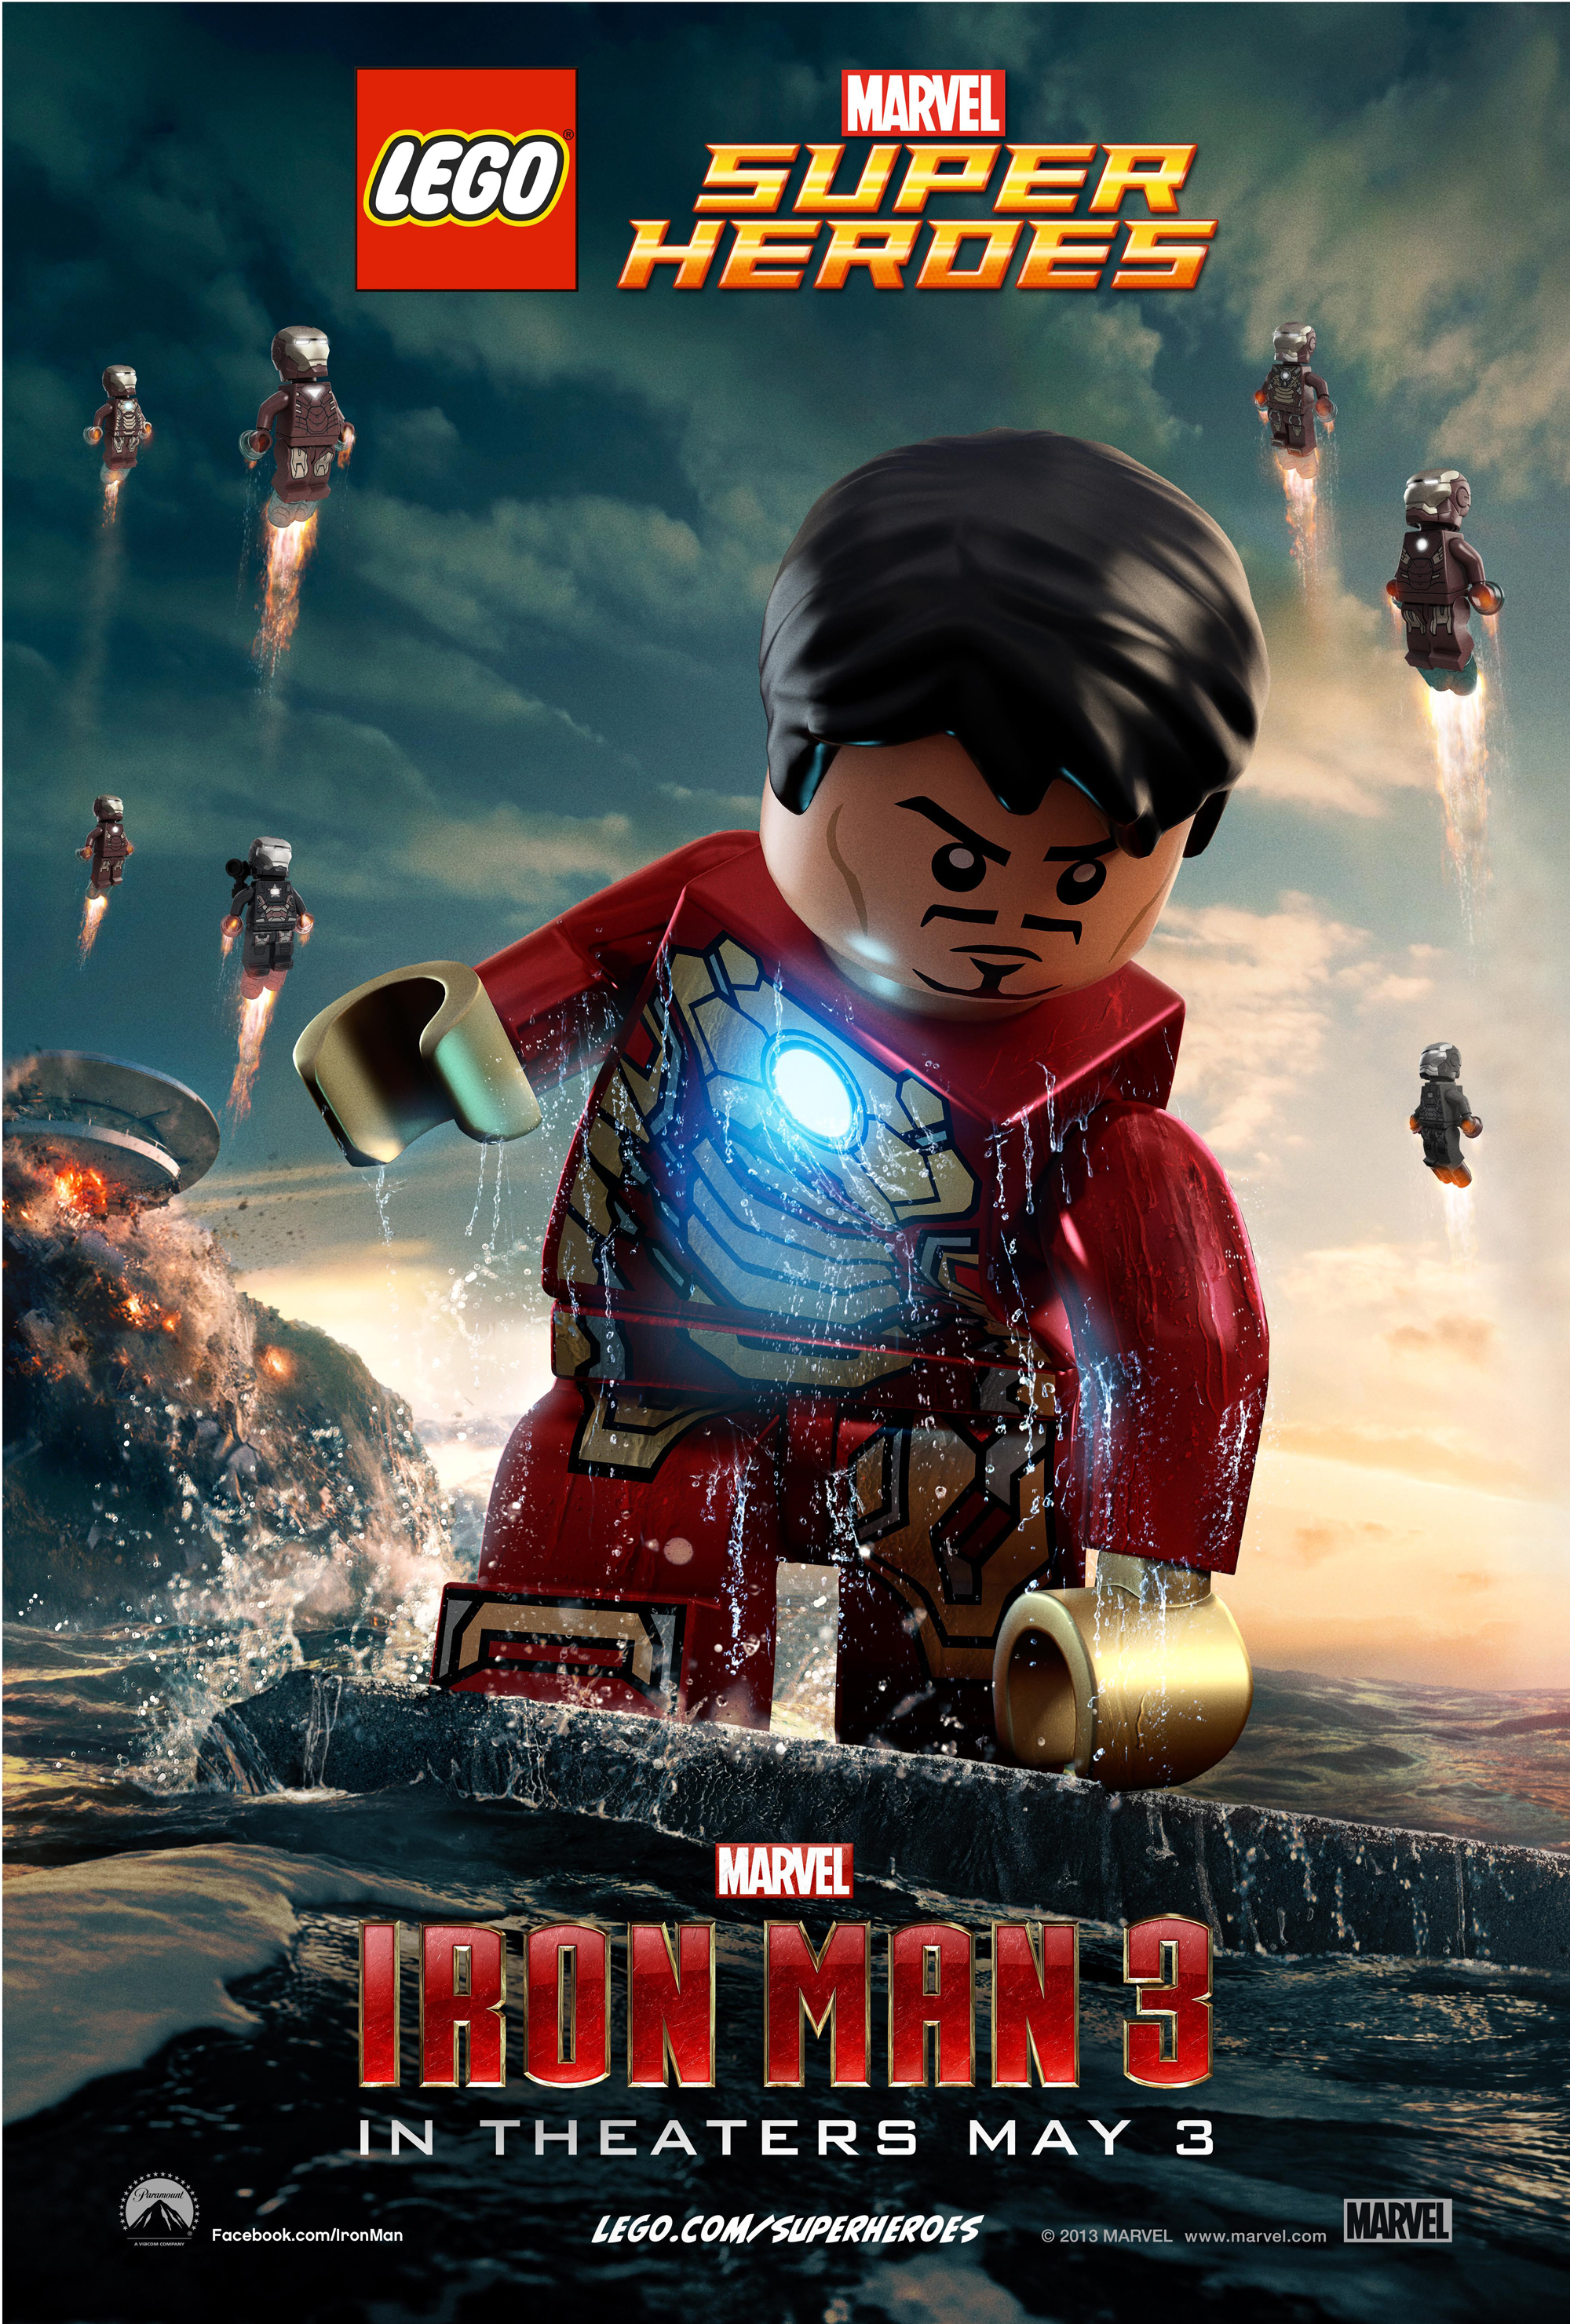 New Posters for IRON MAN 3 Feature Tony Stark in LEGO Form